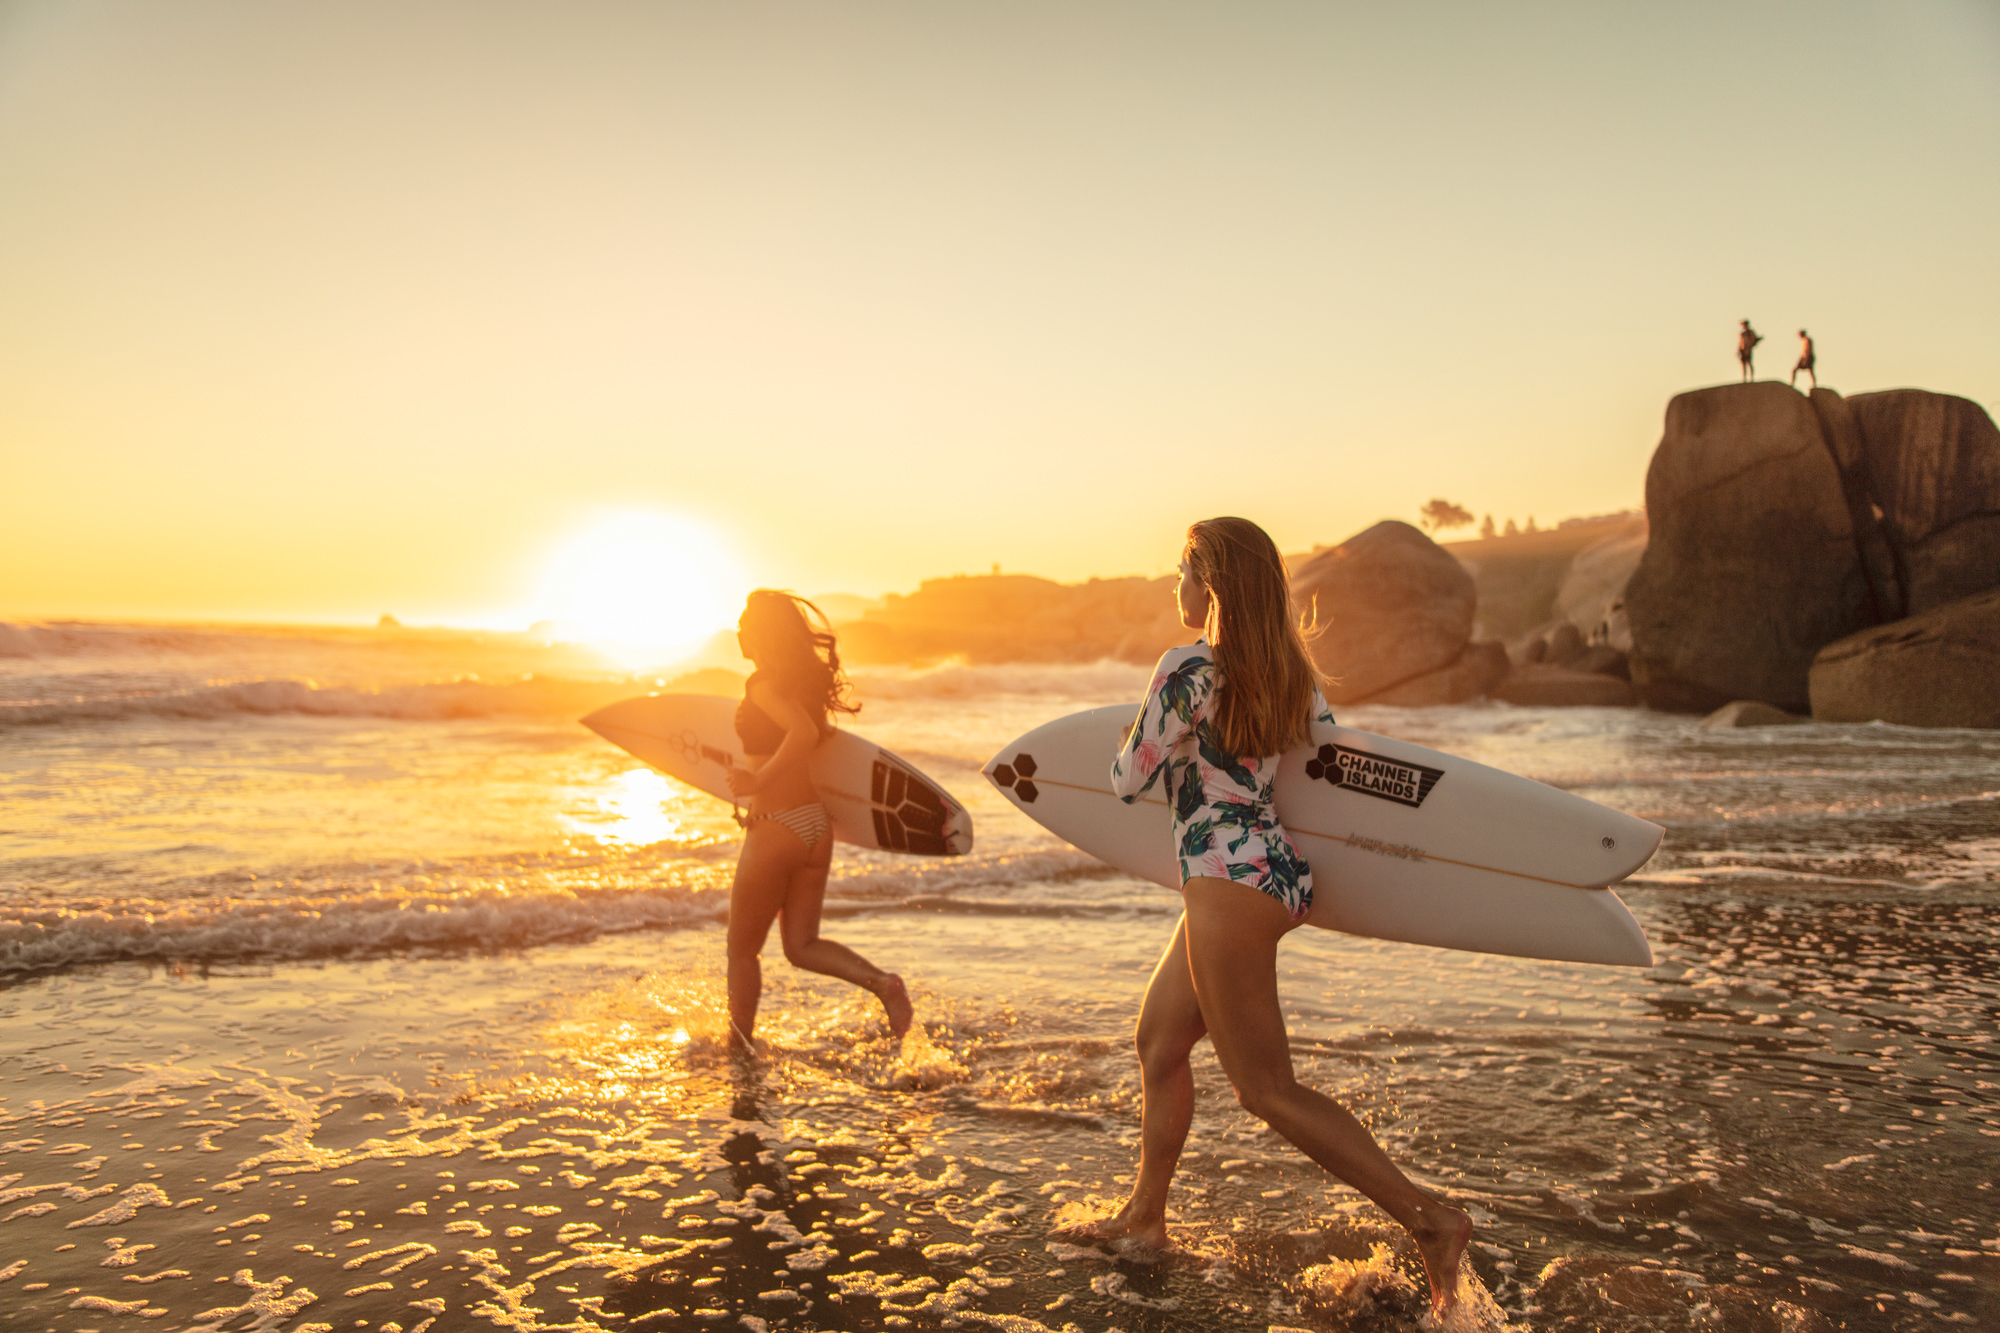 Image of girl friends running into the ocean for a sunset surf in Cape Town for Tsogo Sun's Image Library & Content Library by Michelle Wastie Photography